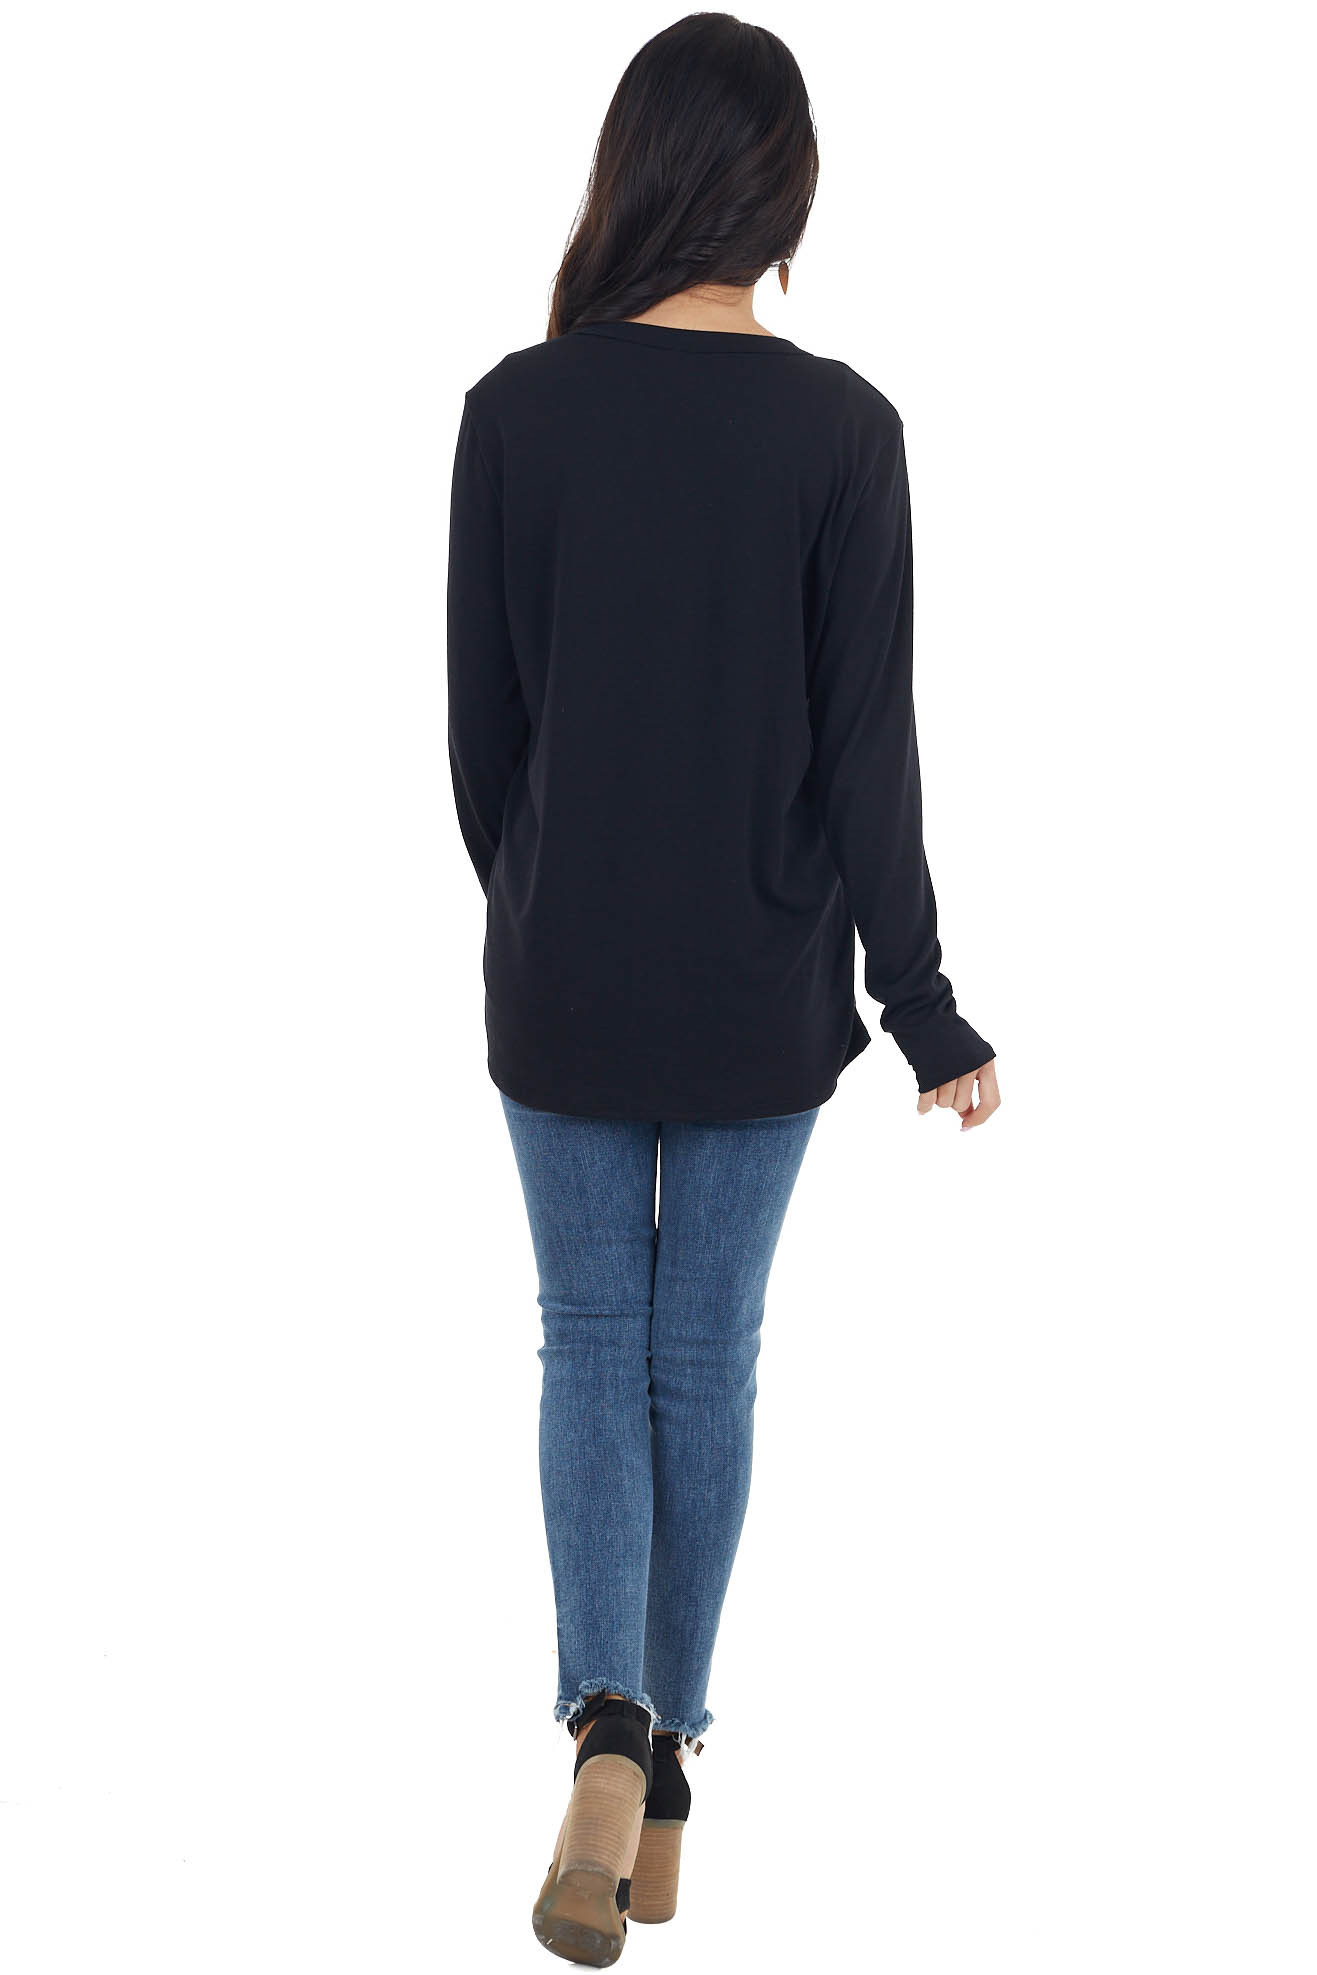 Black Long Sleeve Knit Top with Red and Oatmeal Heart Detail